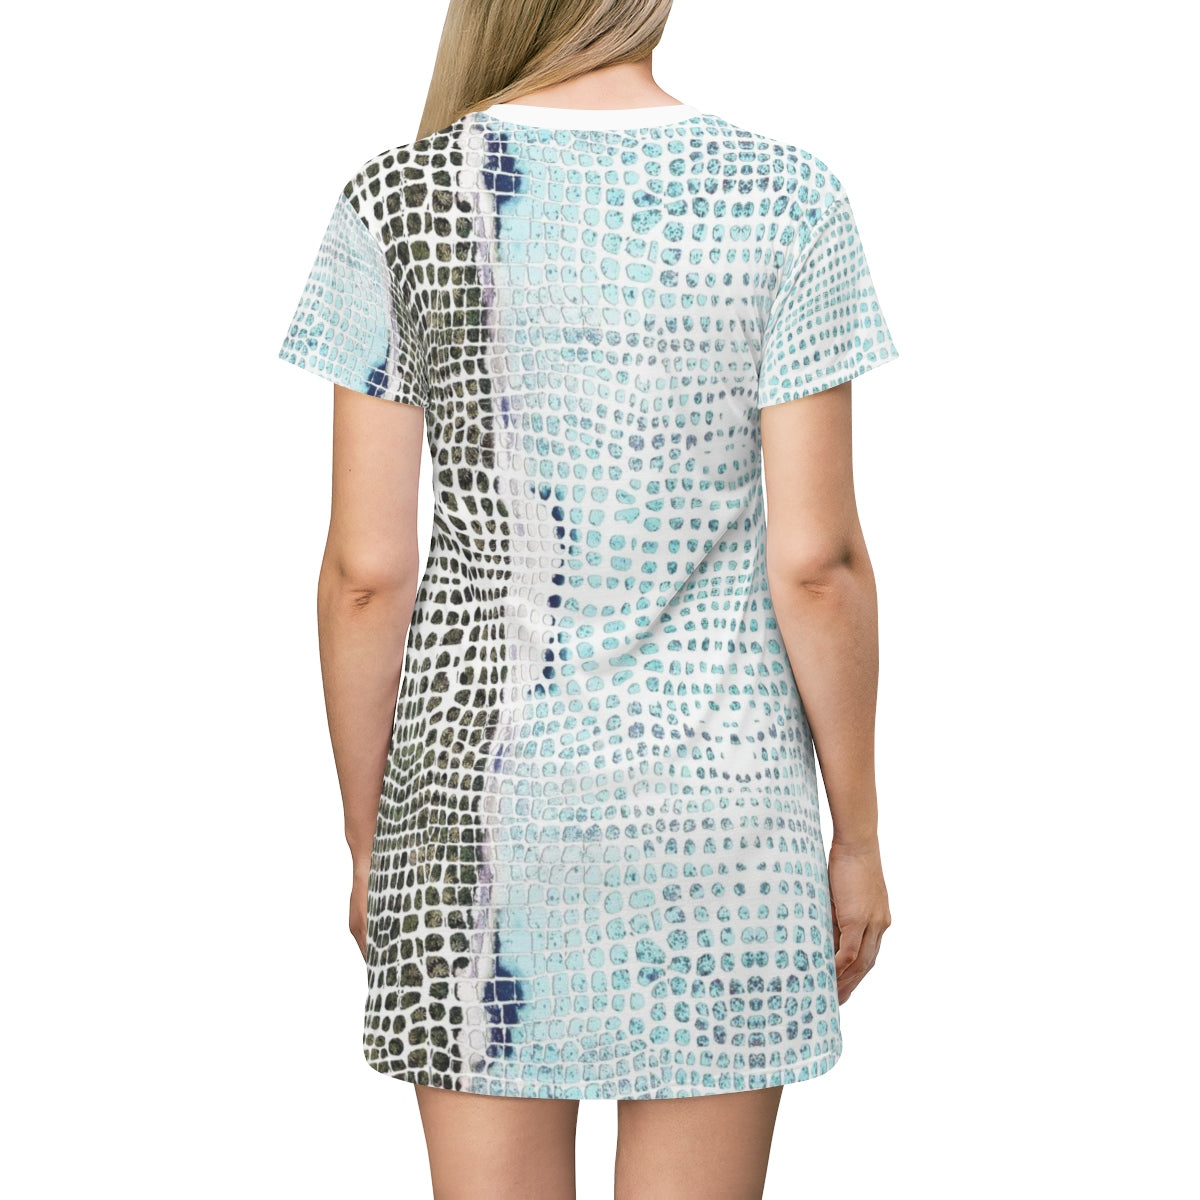 Fiji Islands #0004 (T-shirt Dress)